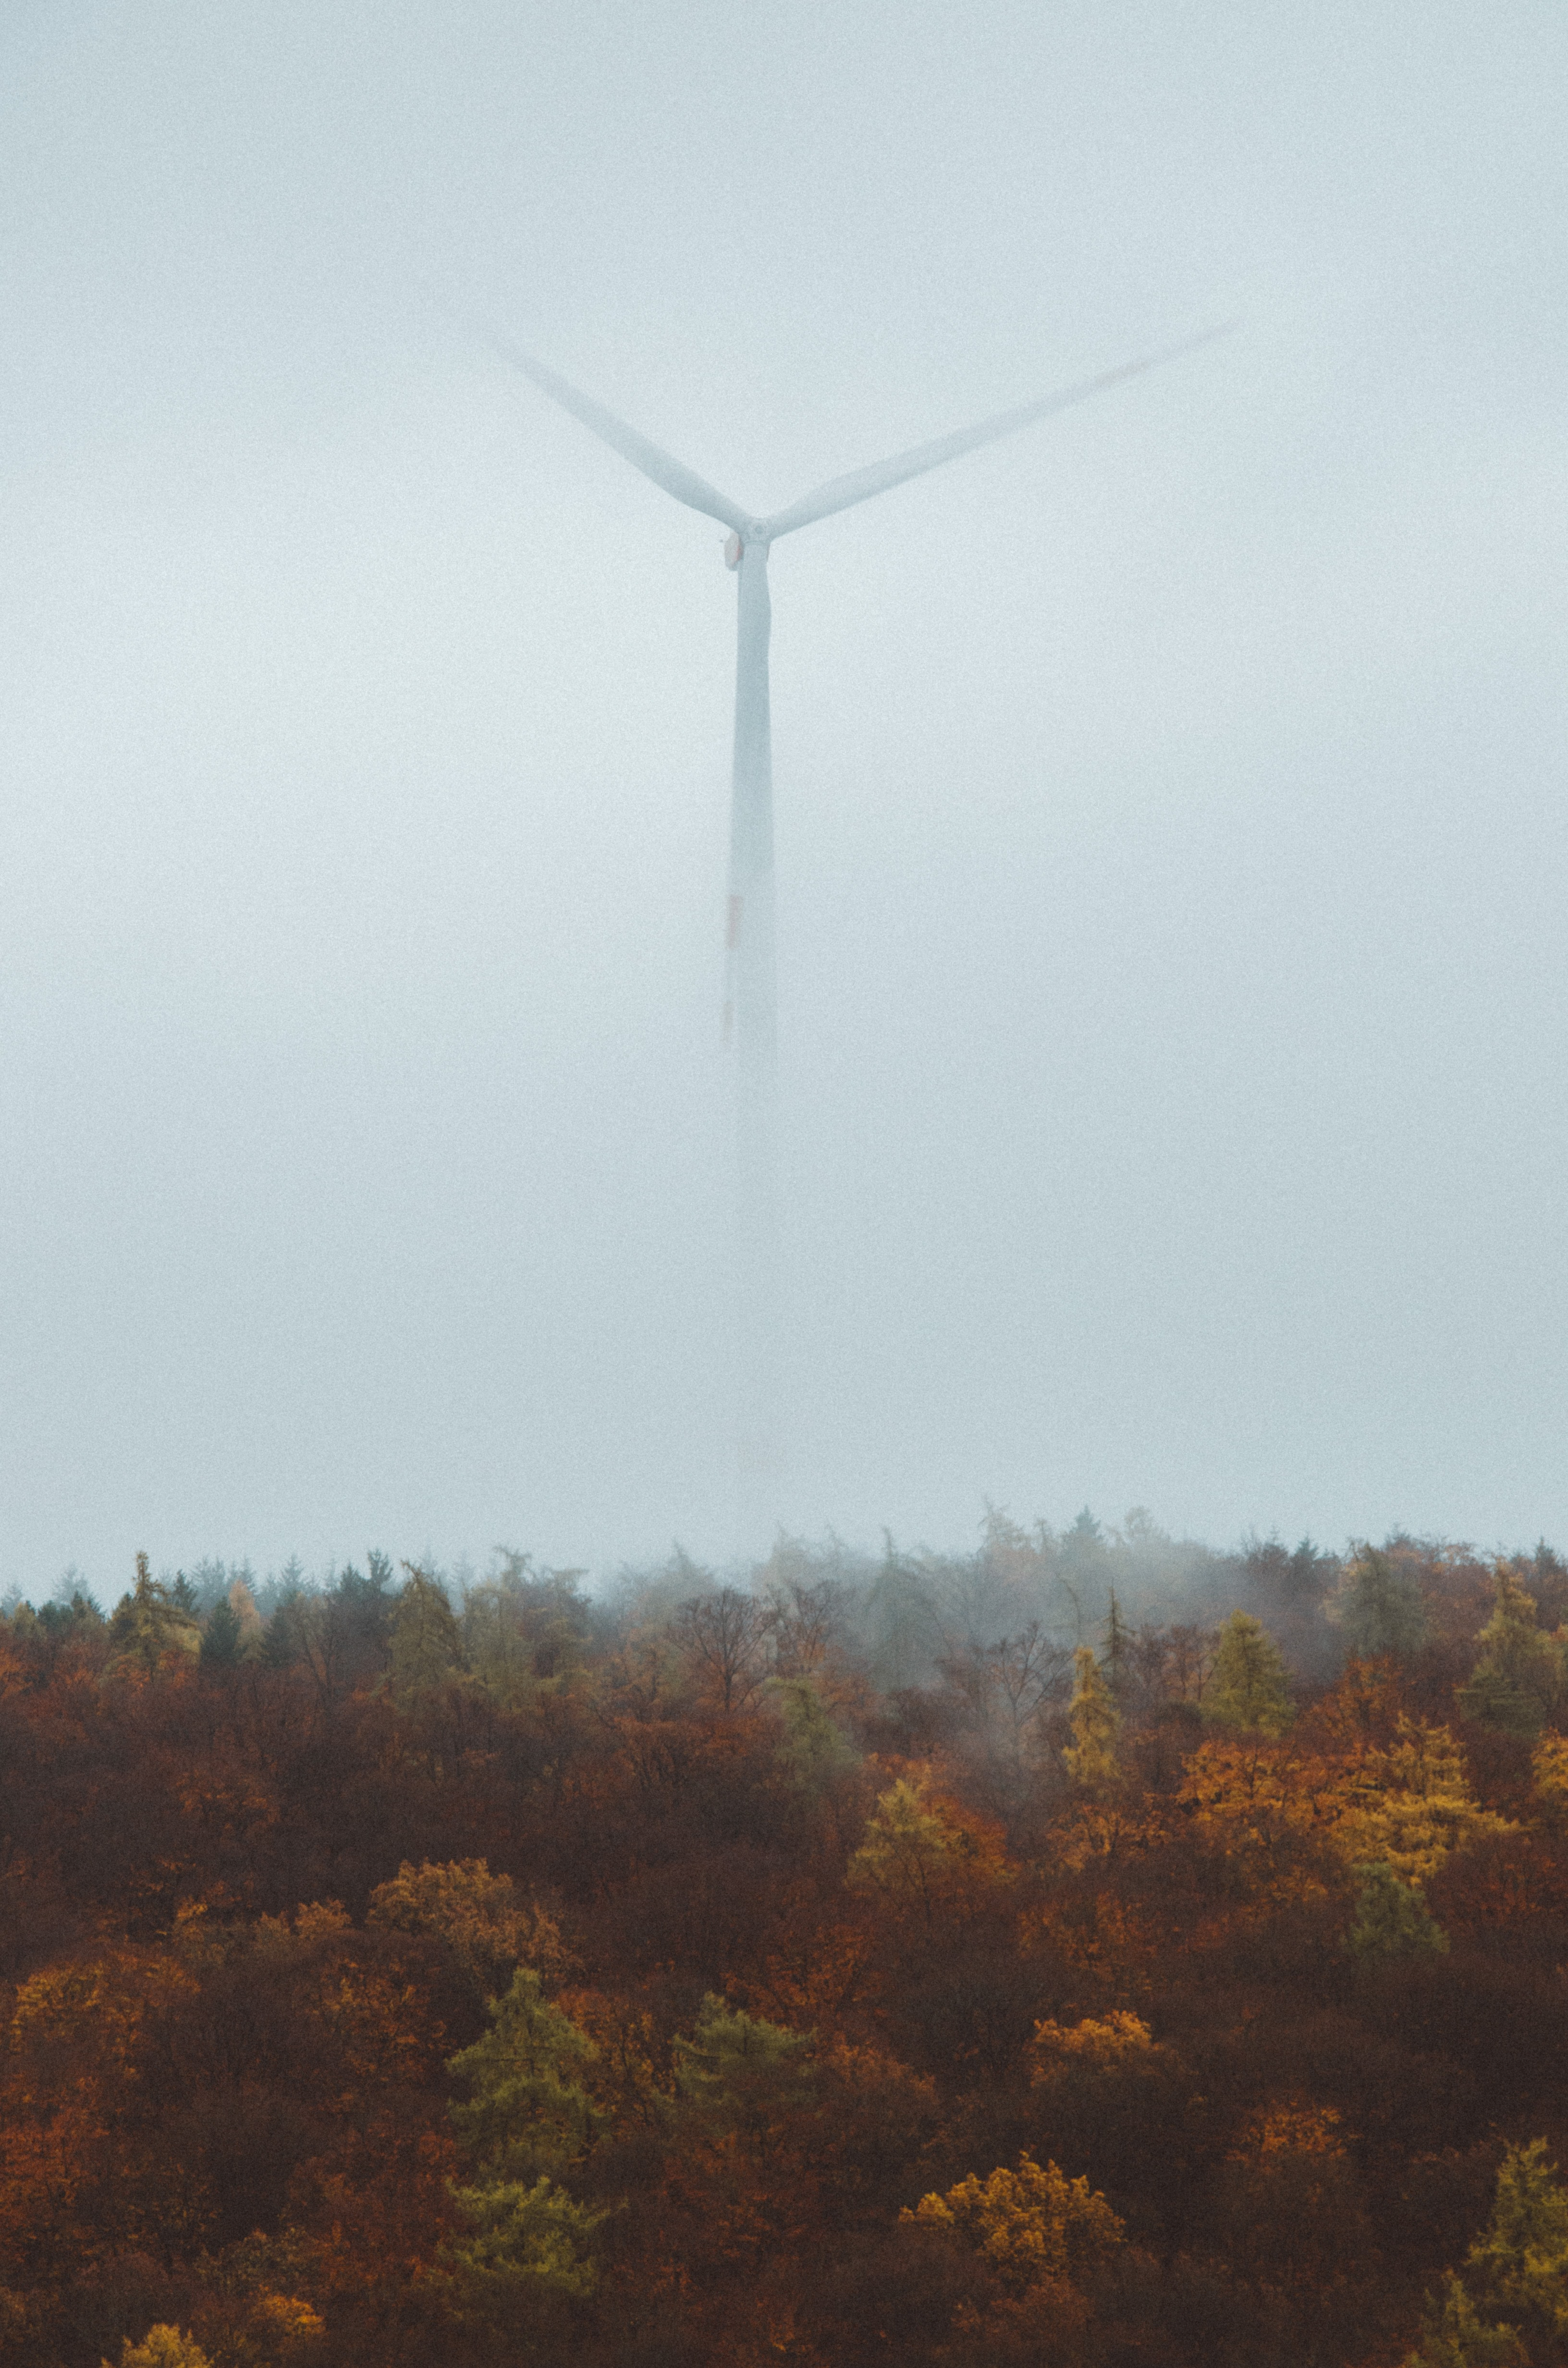 wind turbine covered in fog near forest